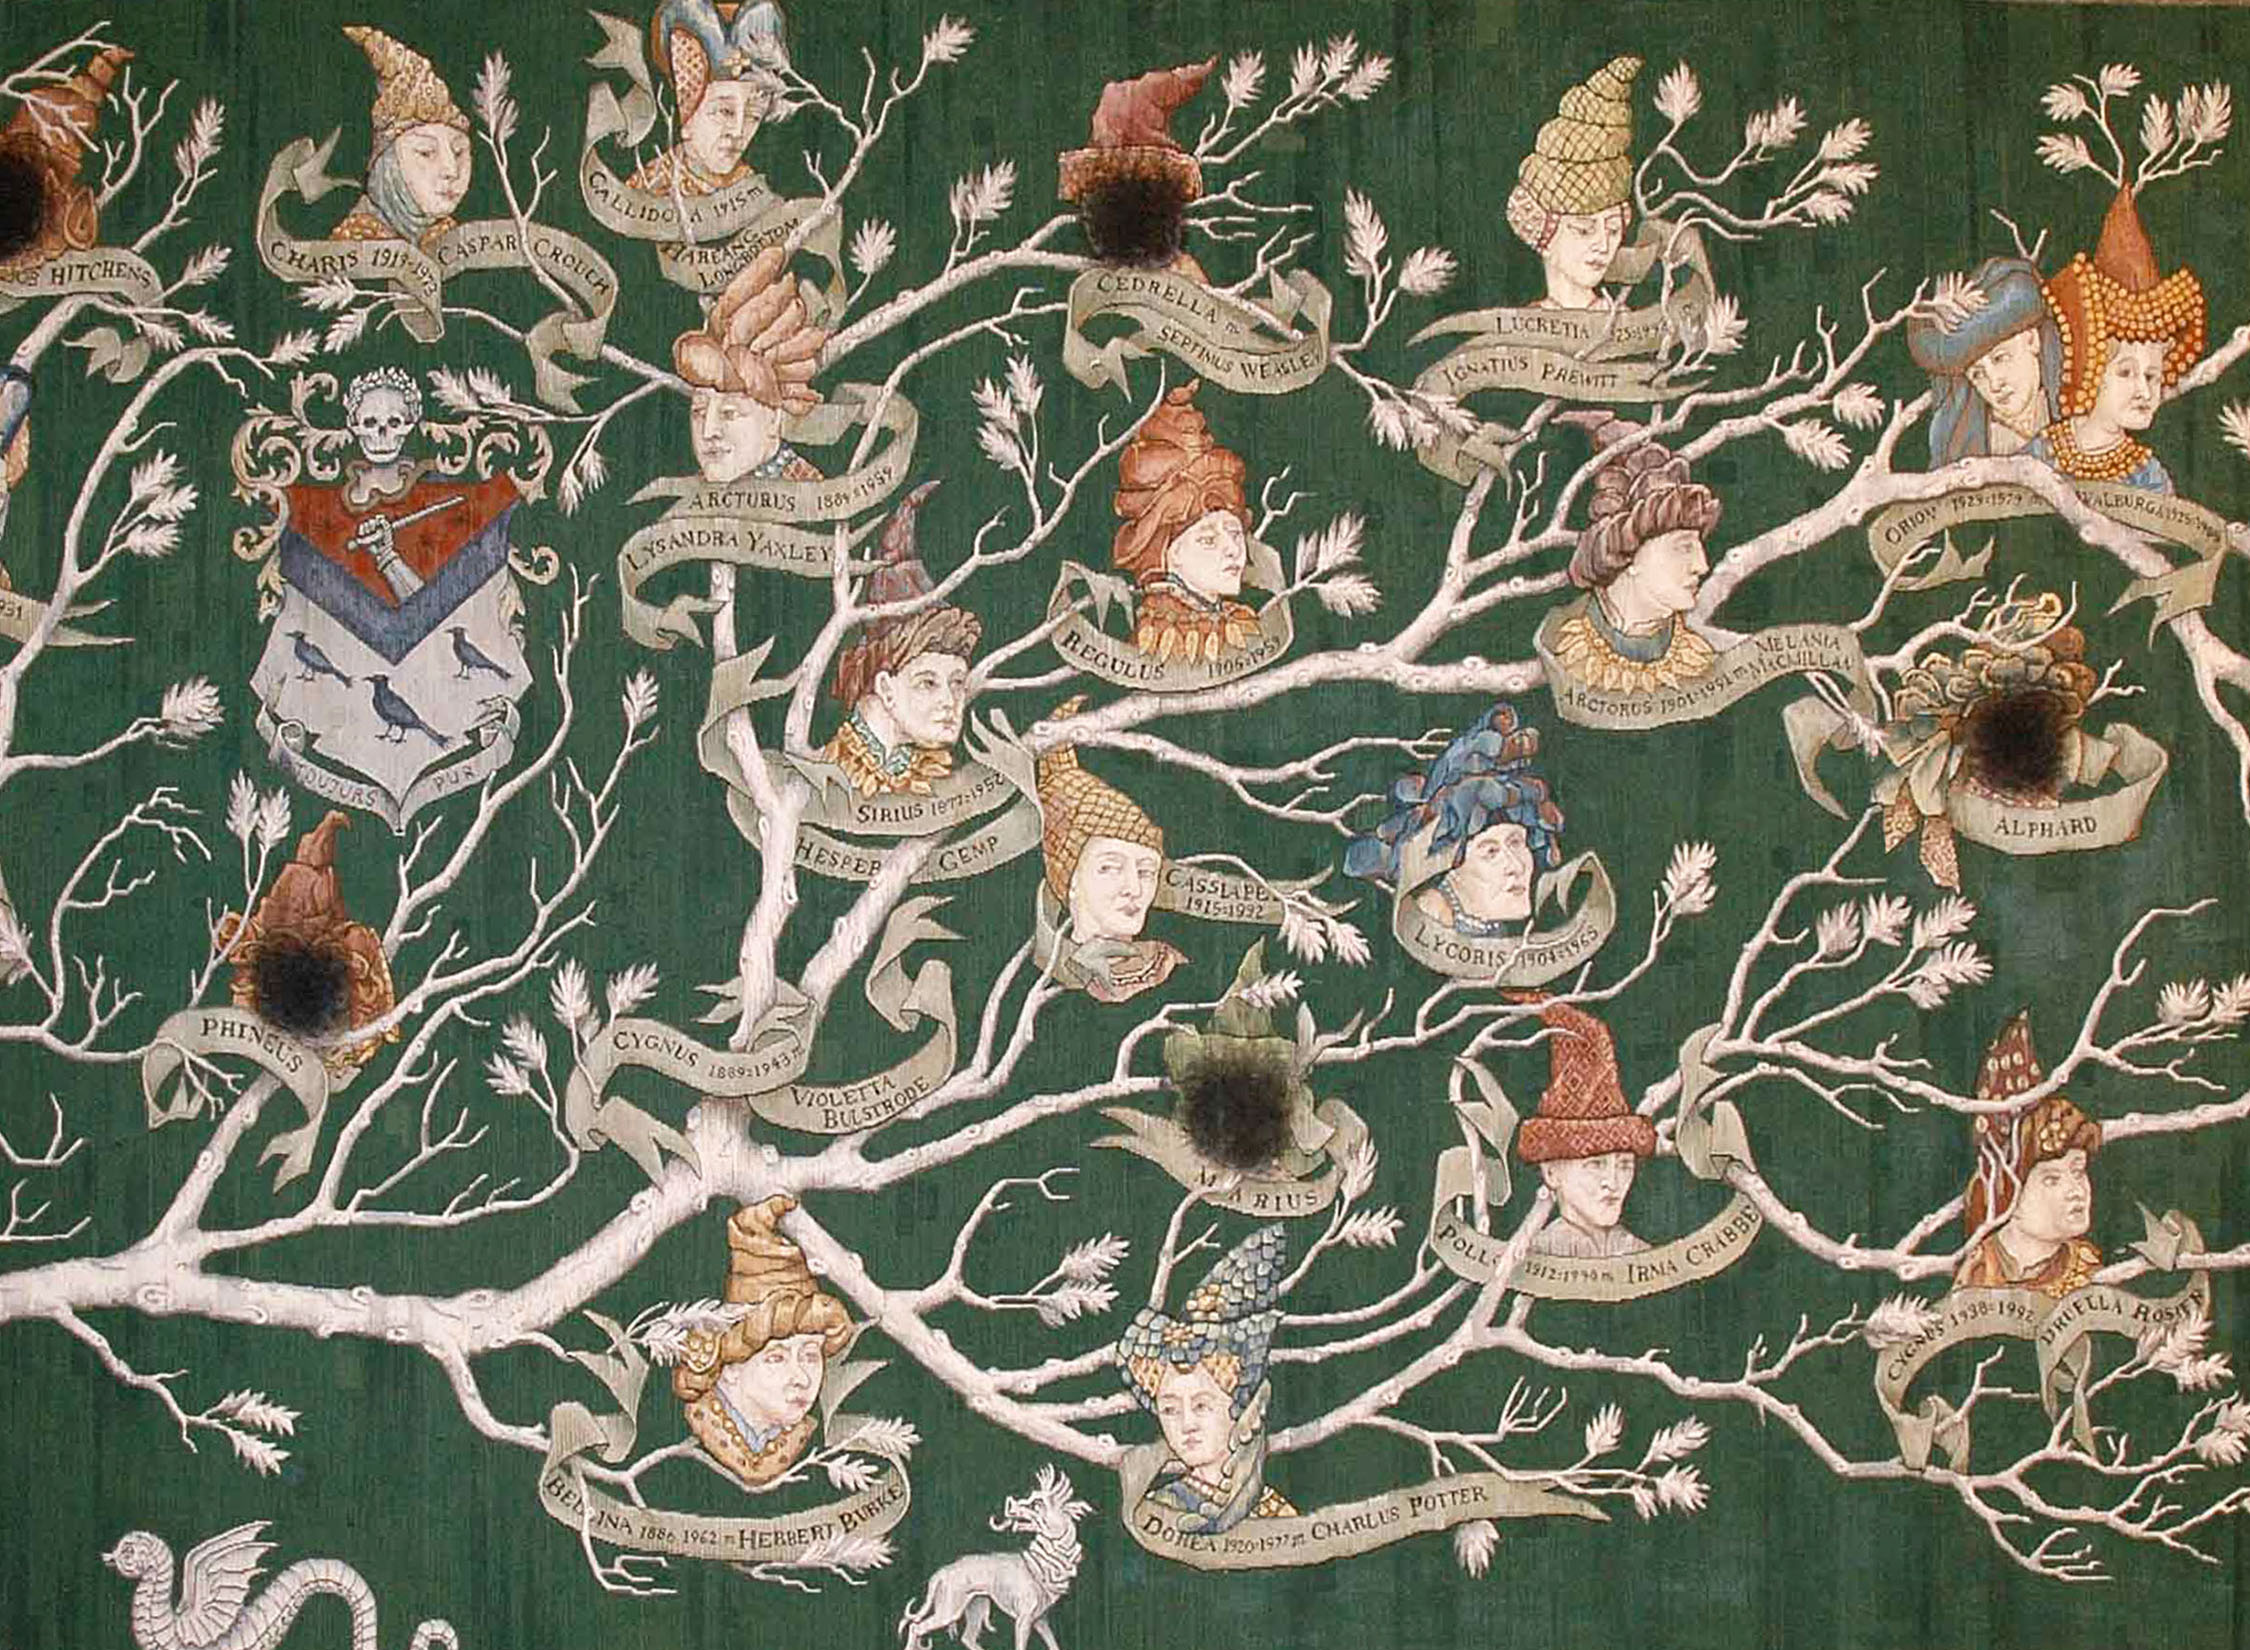 Family tree detail